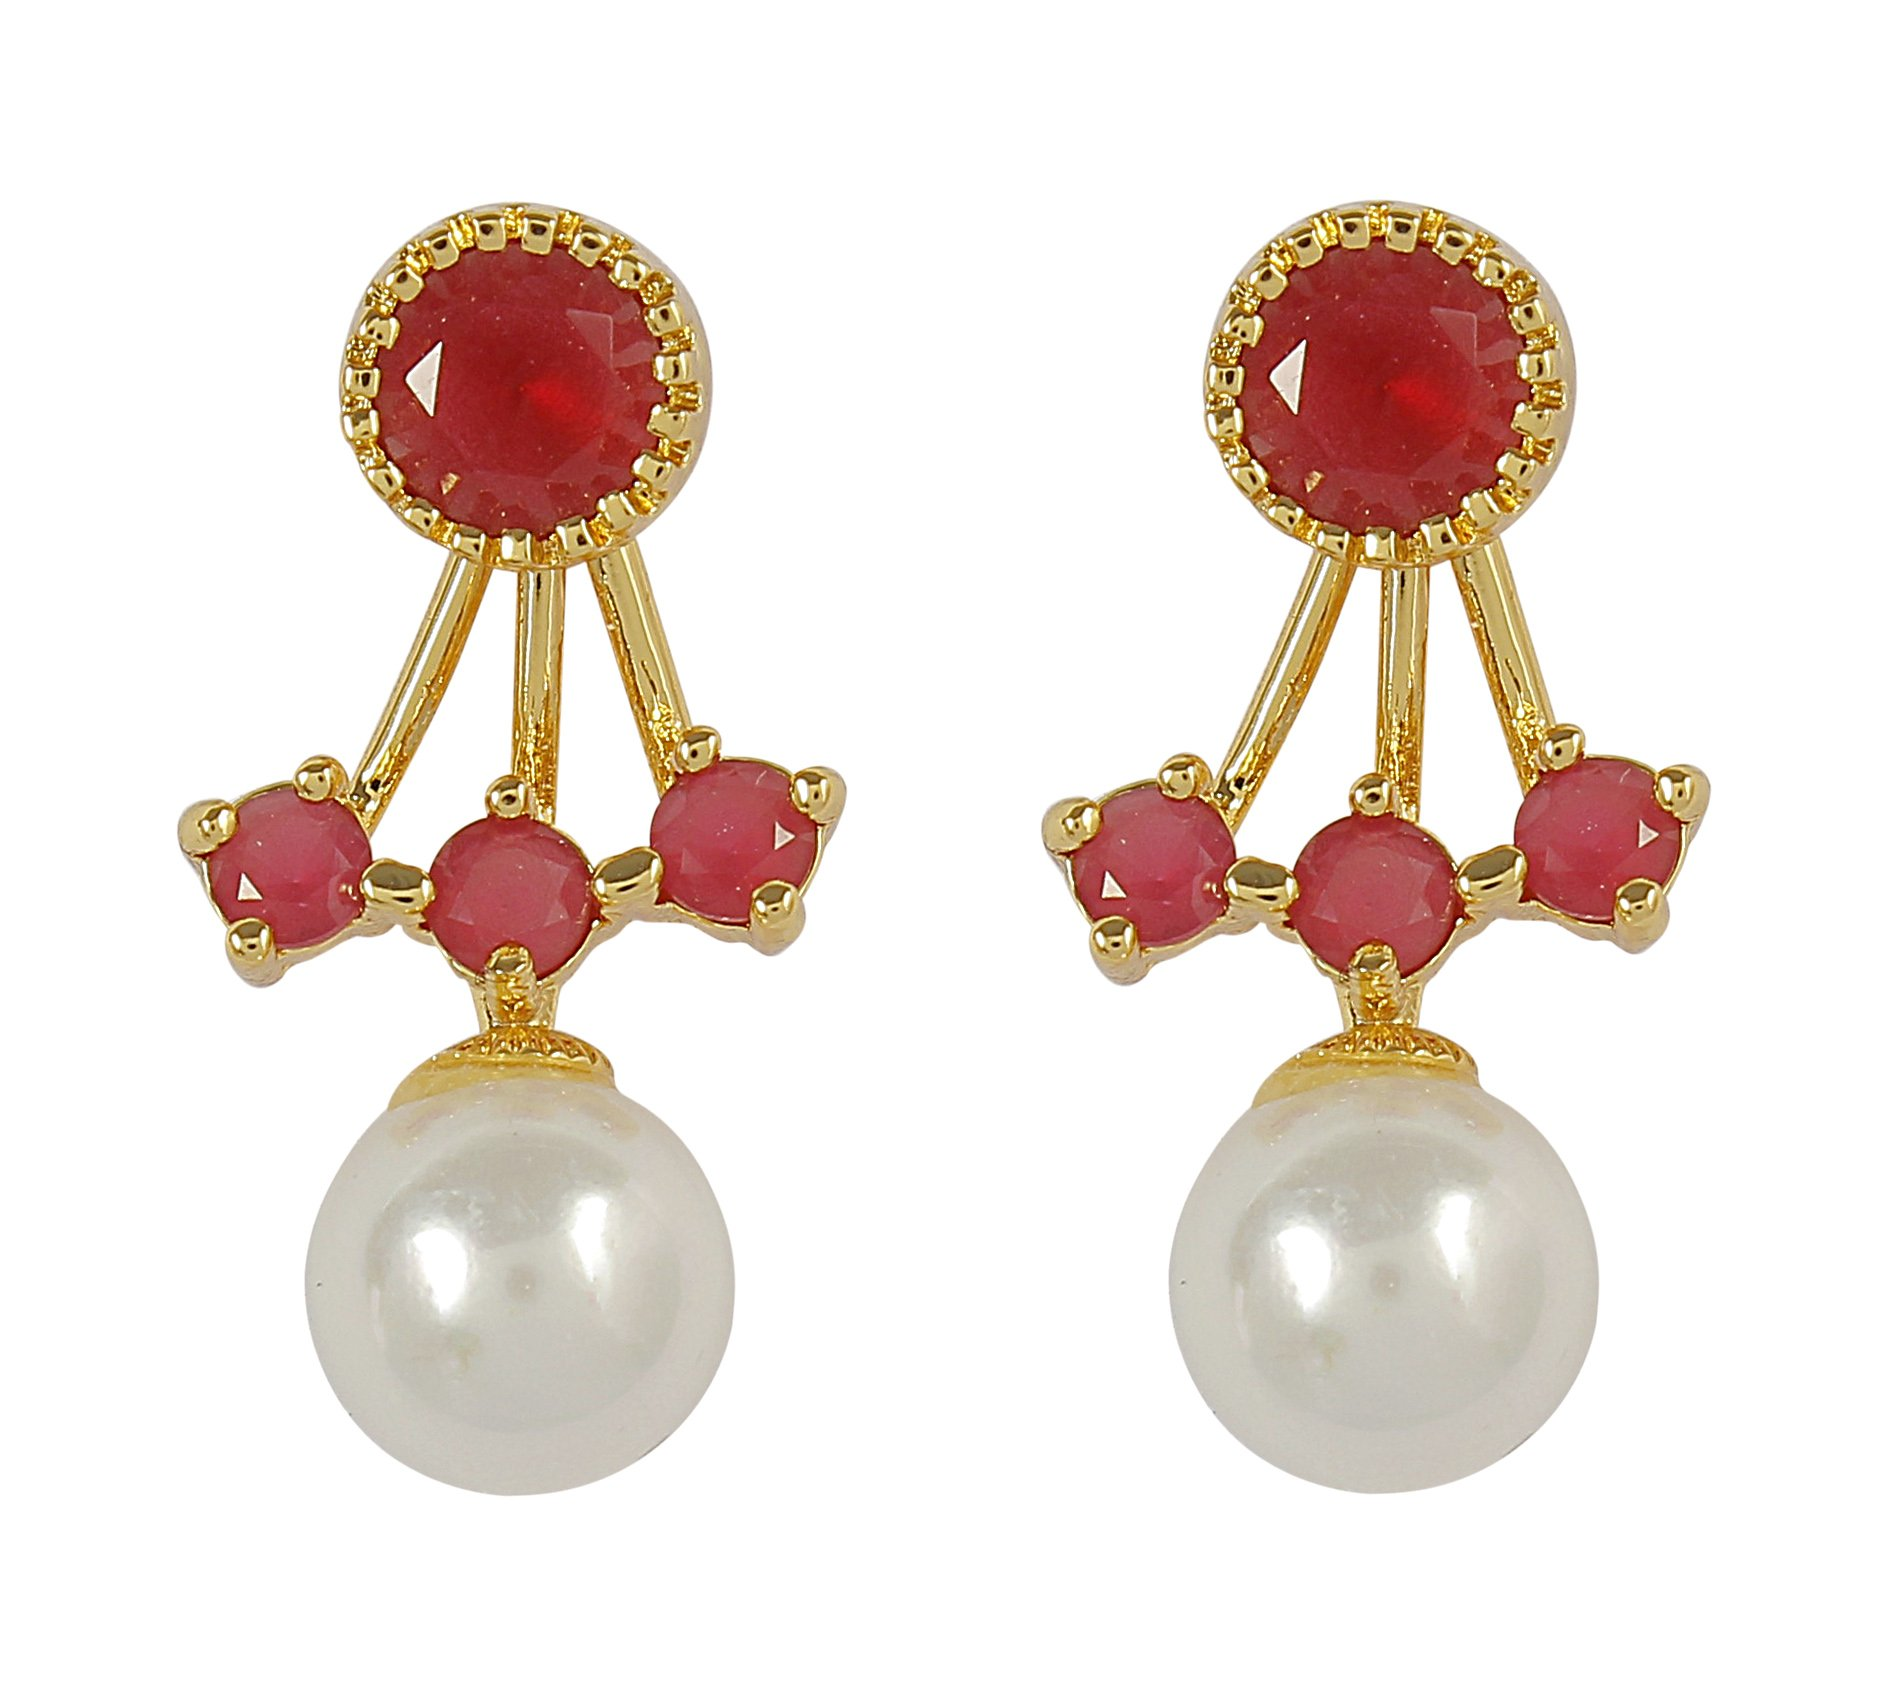 MUCH-MORE Amazing Bollywood Style Diamontic Earring Partywear Indian Jewelry (1055)